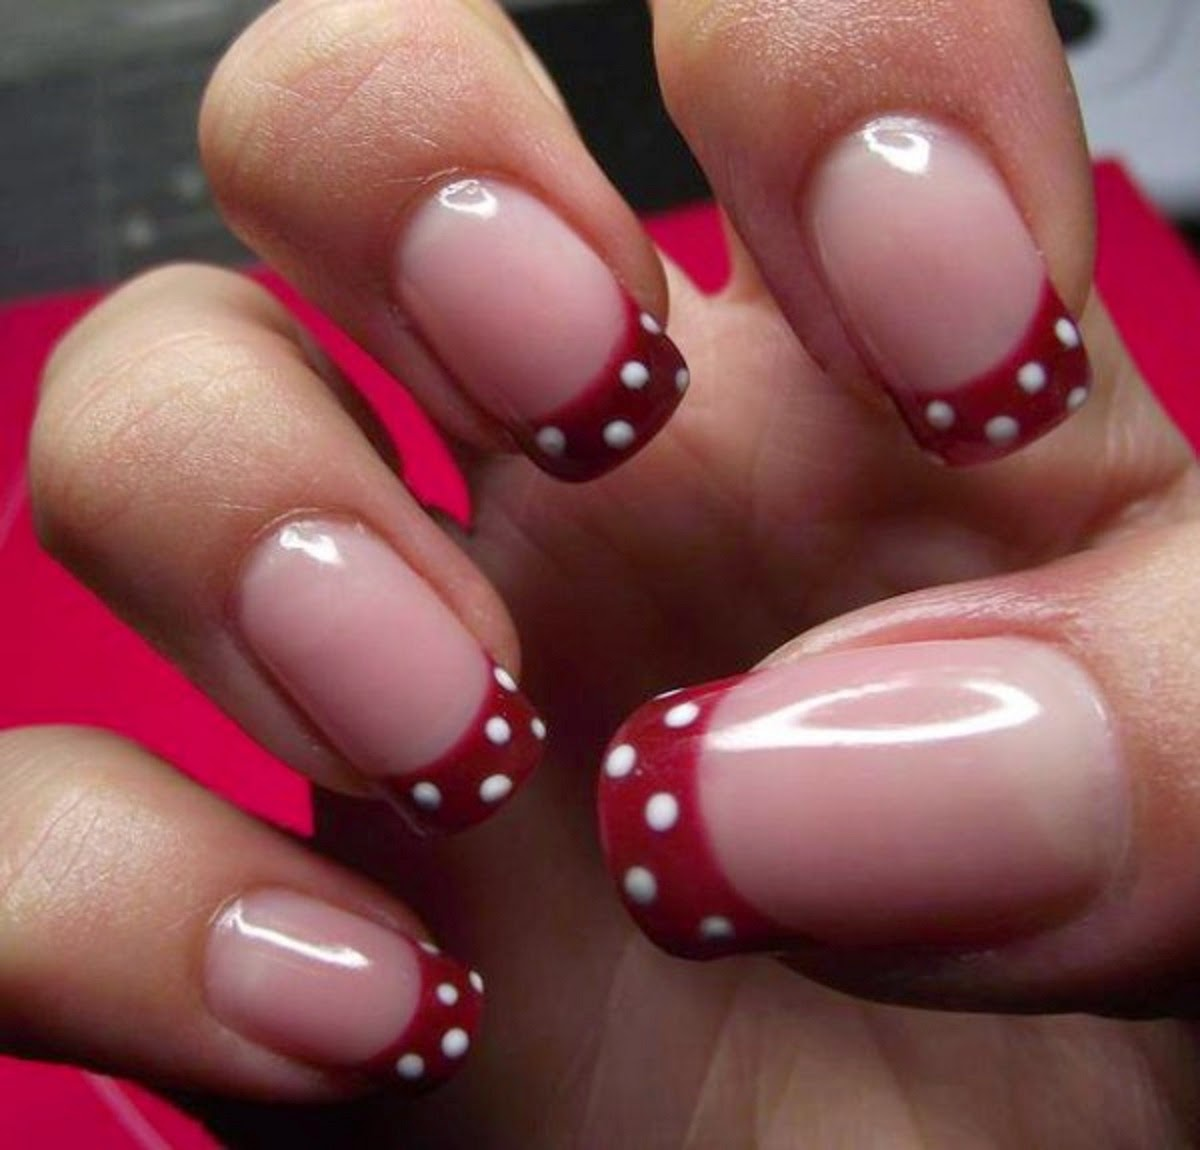 Dynamic Views Very Beautiful And Preity Nails Art Red